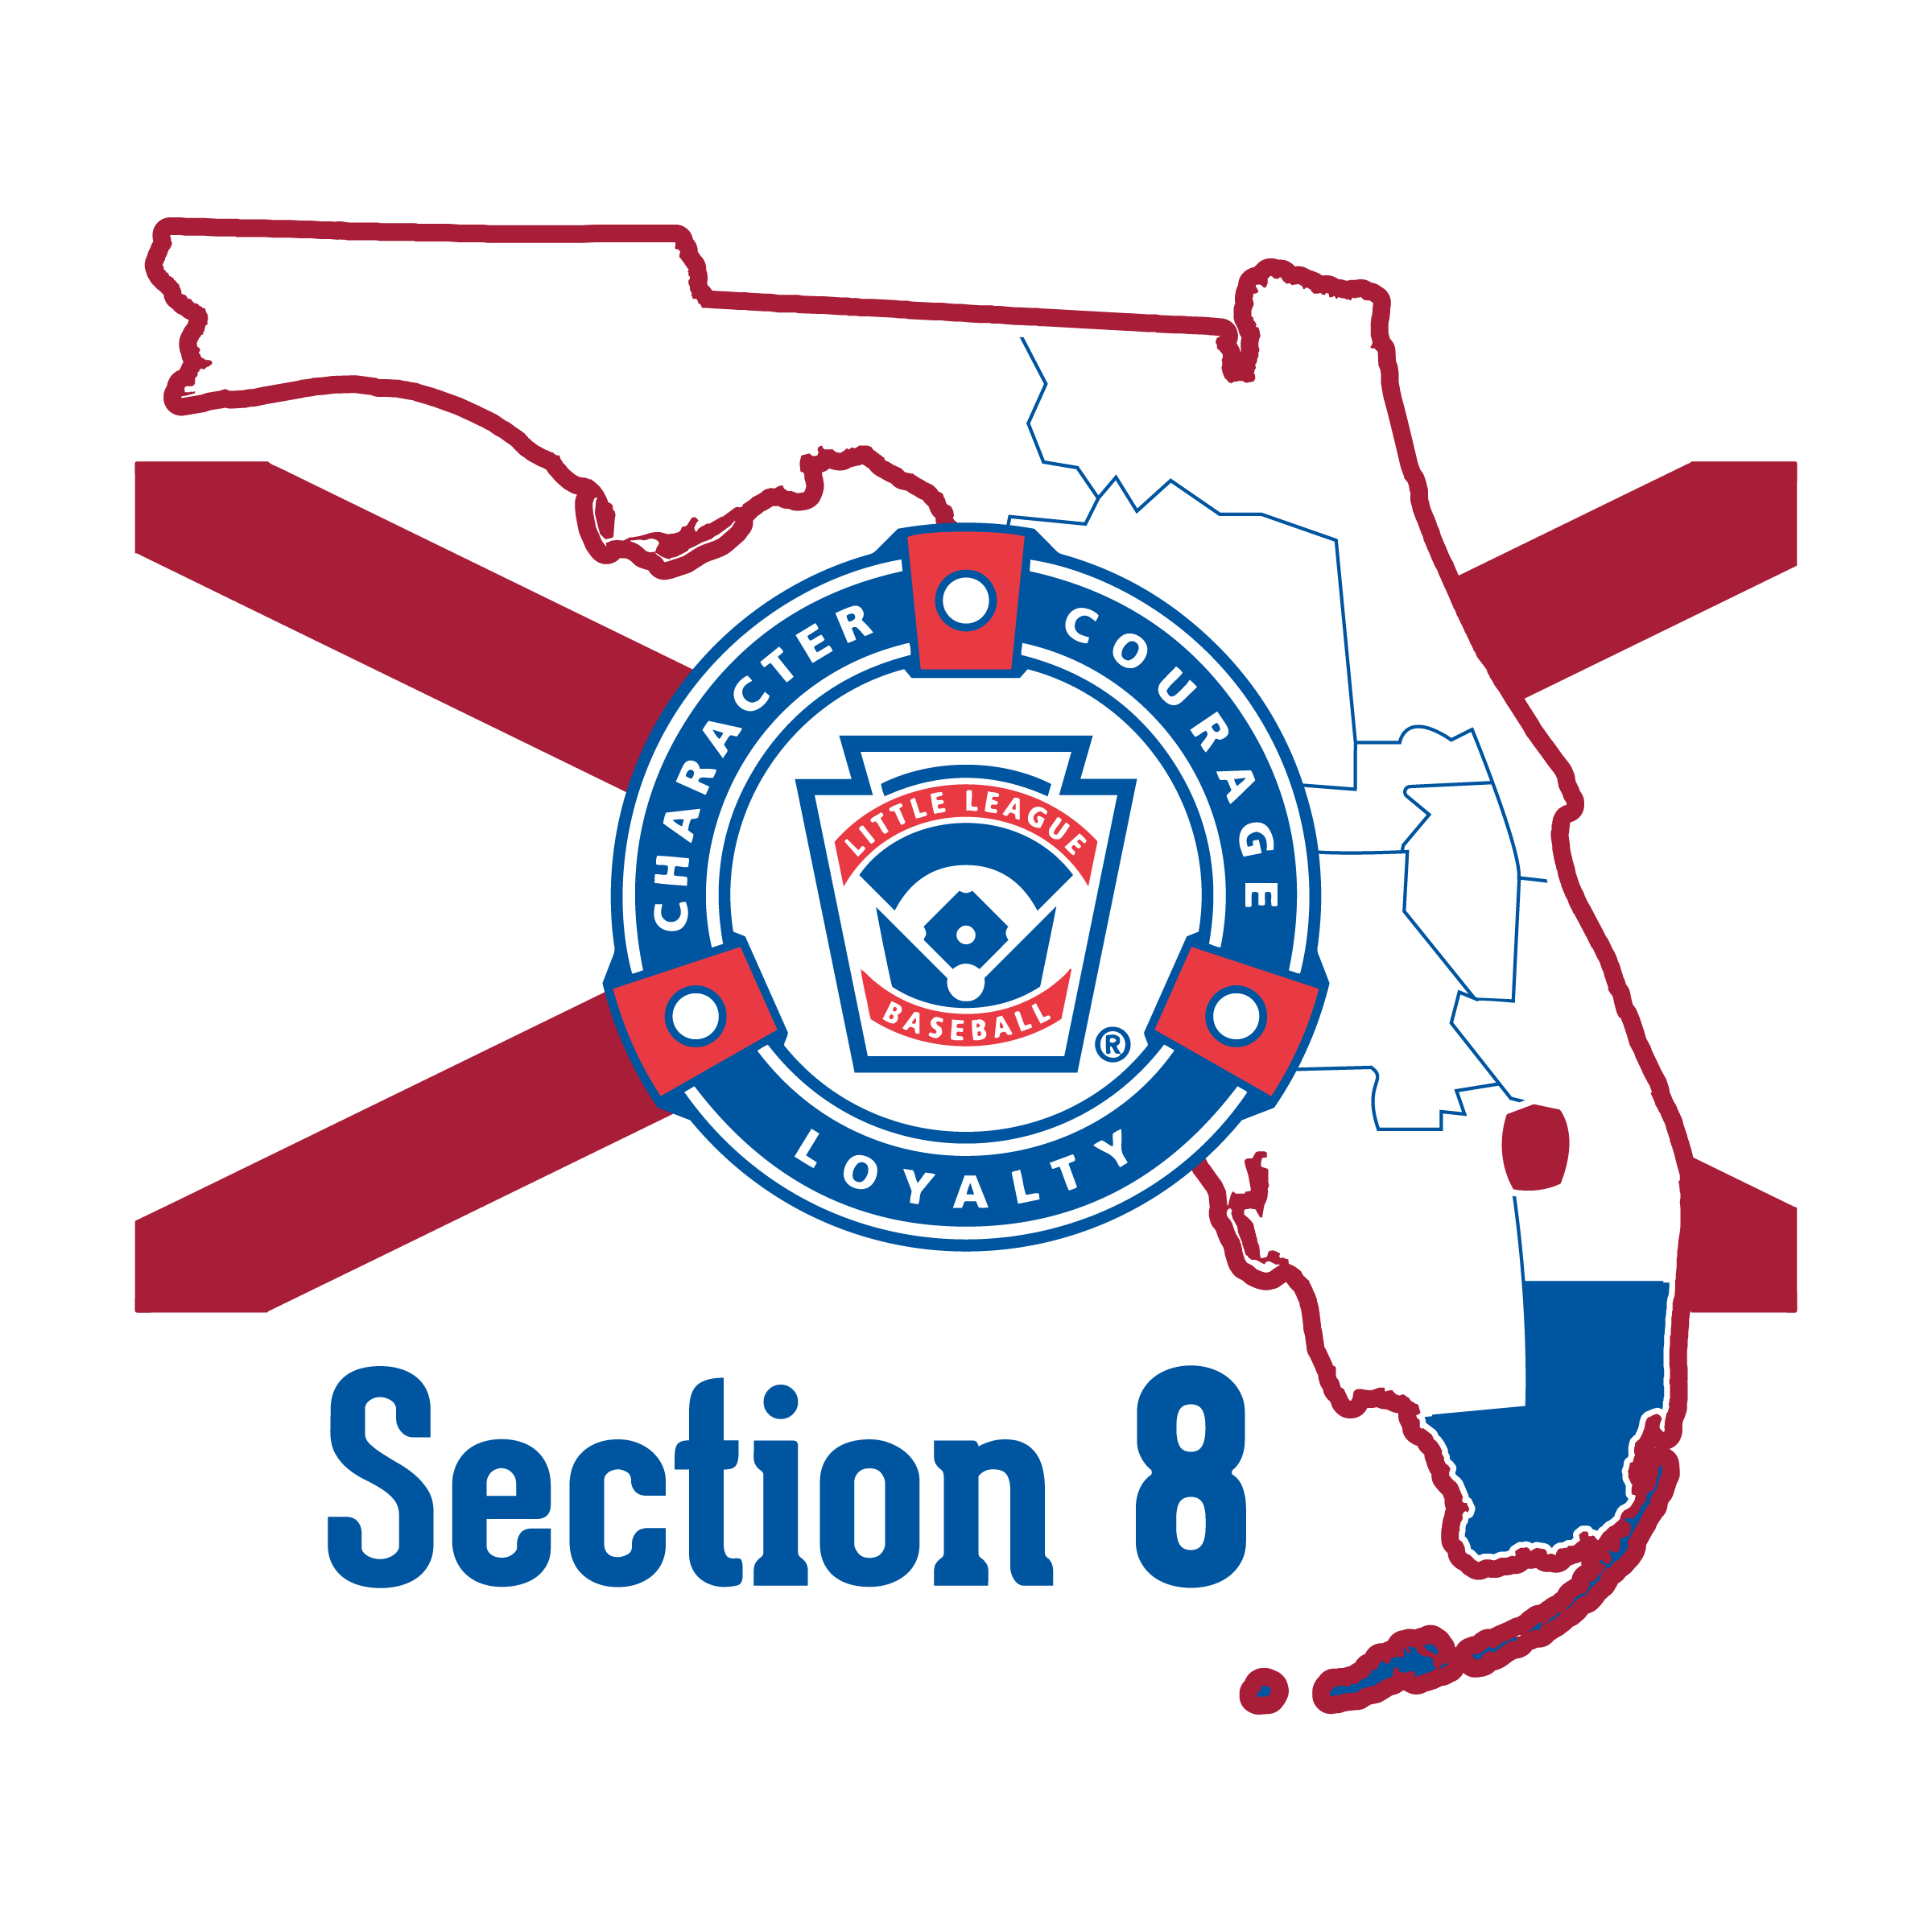 Districts League Florida Baseball amp; Sections - Little